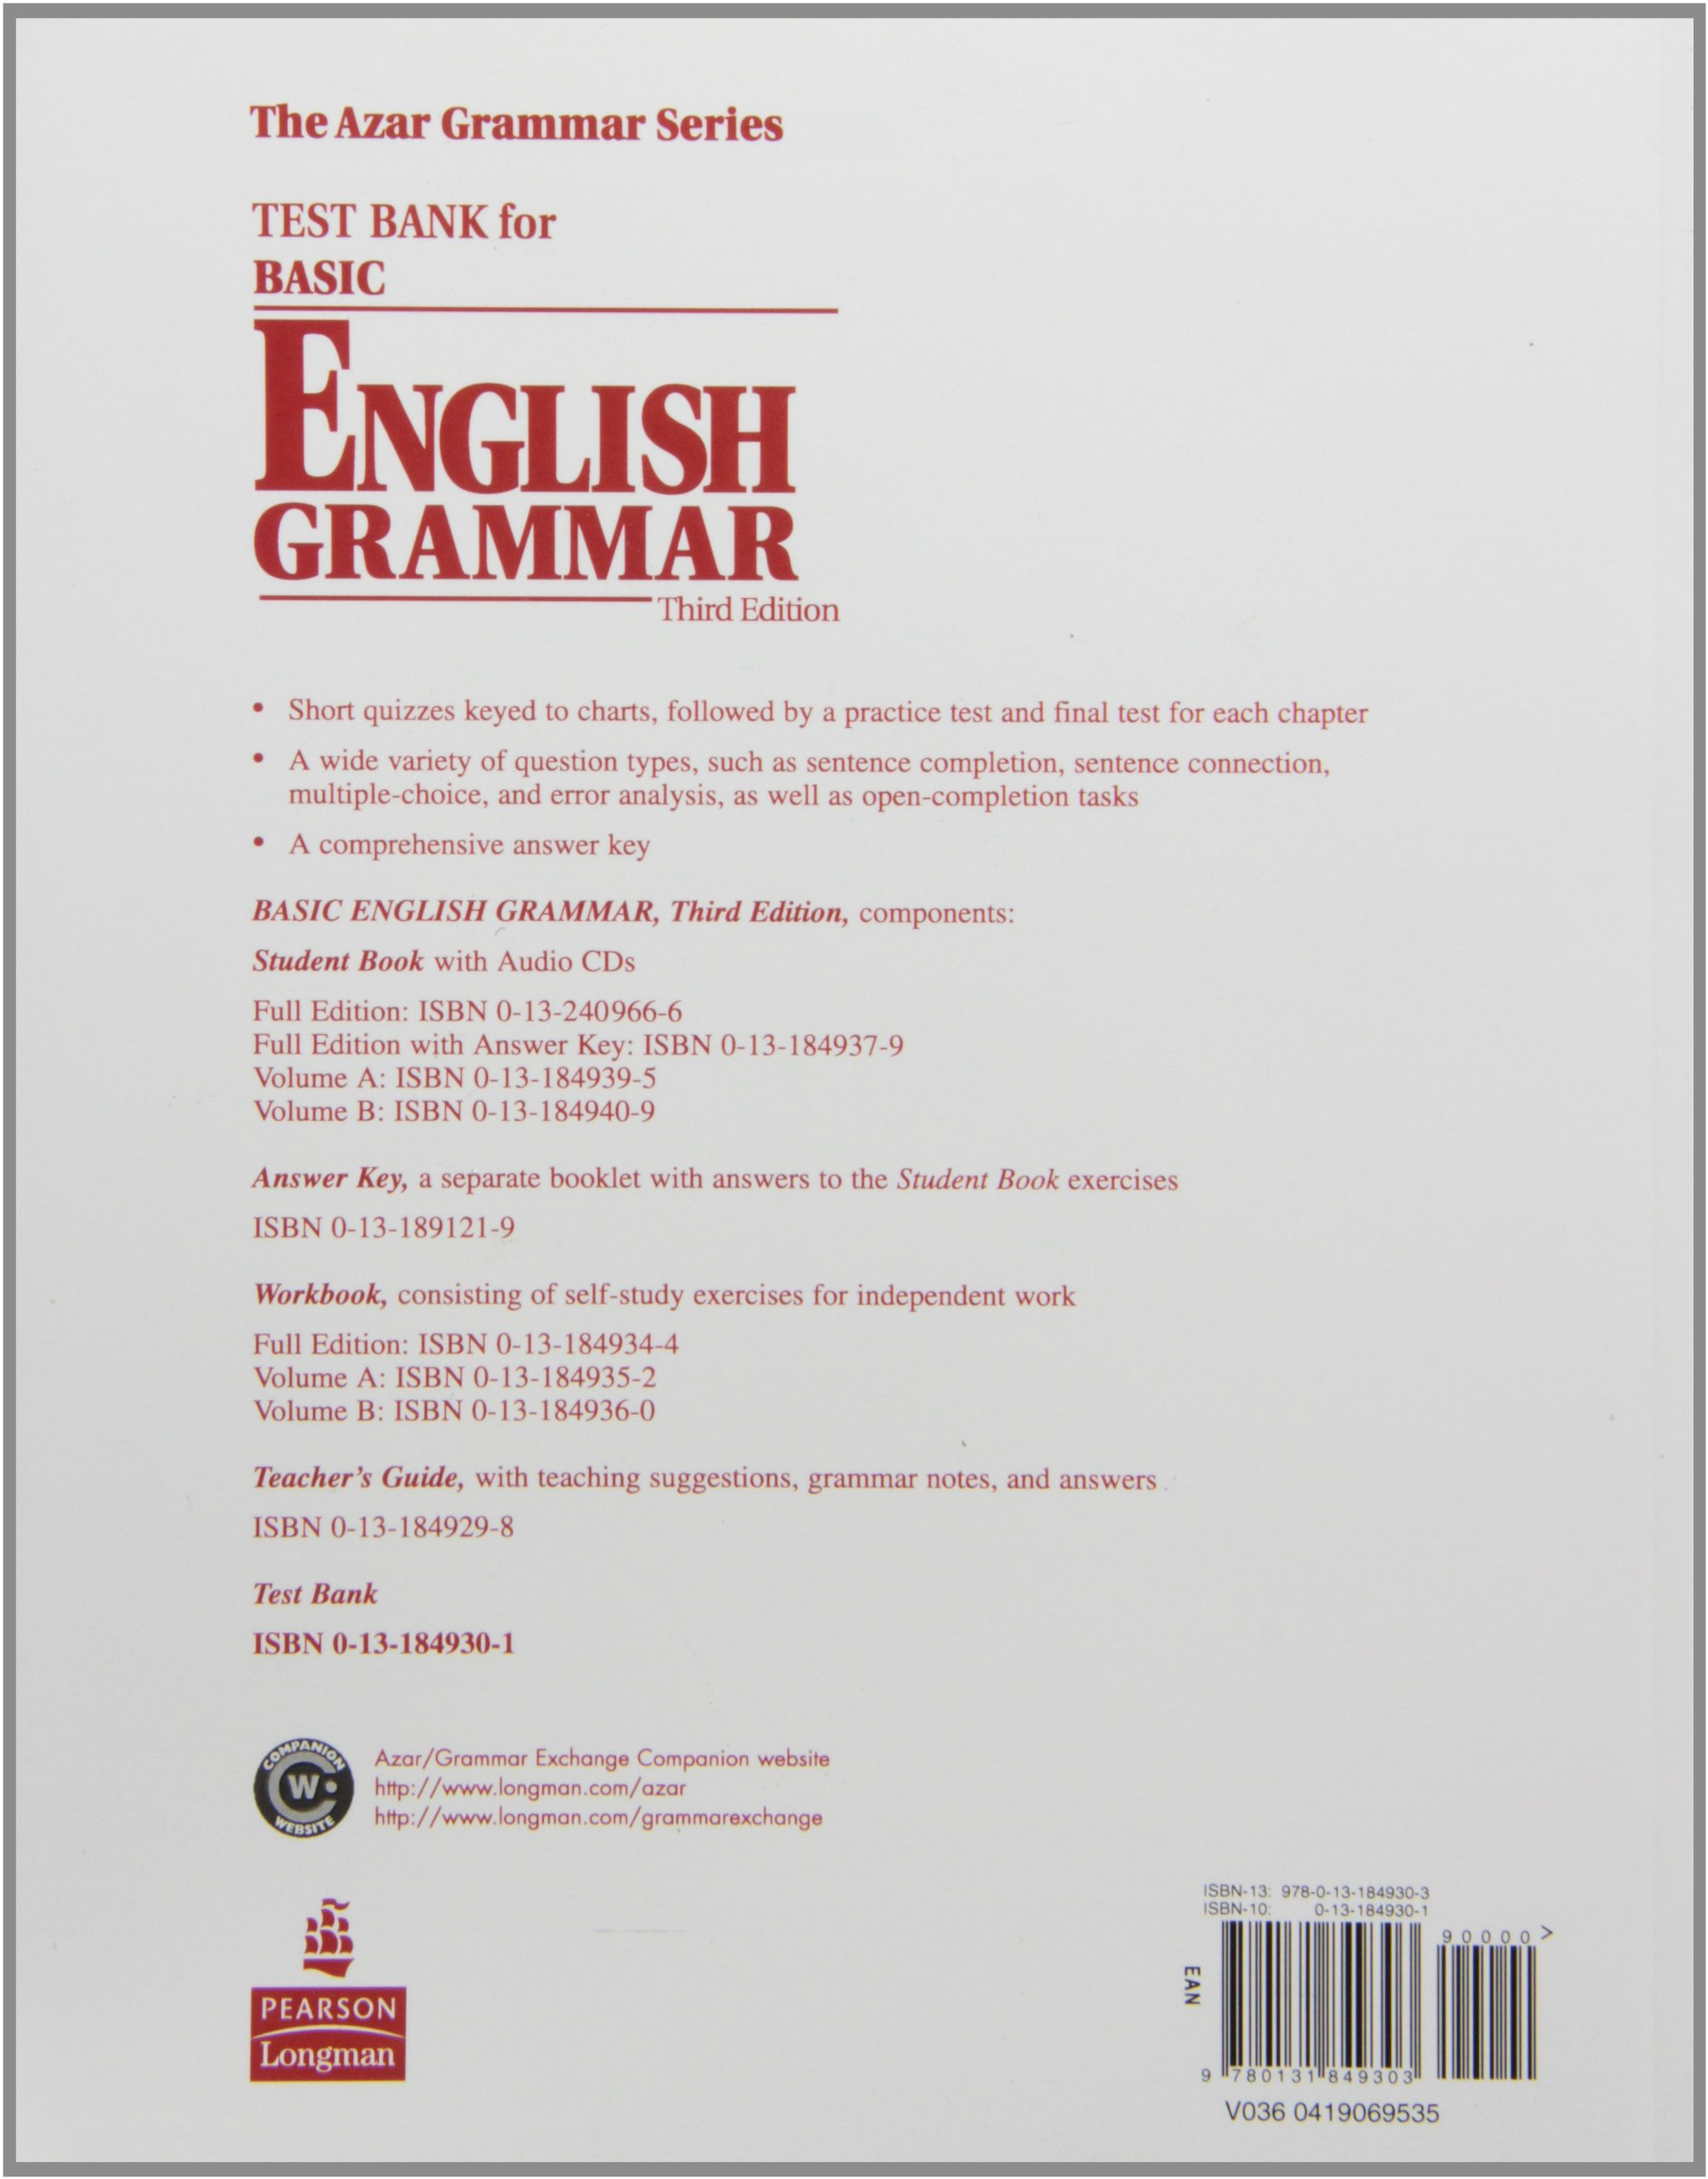 English grammar with a separate key volume